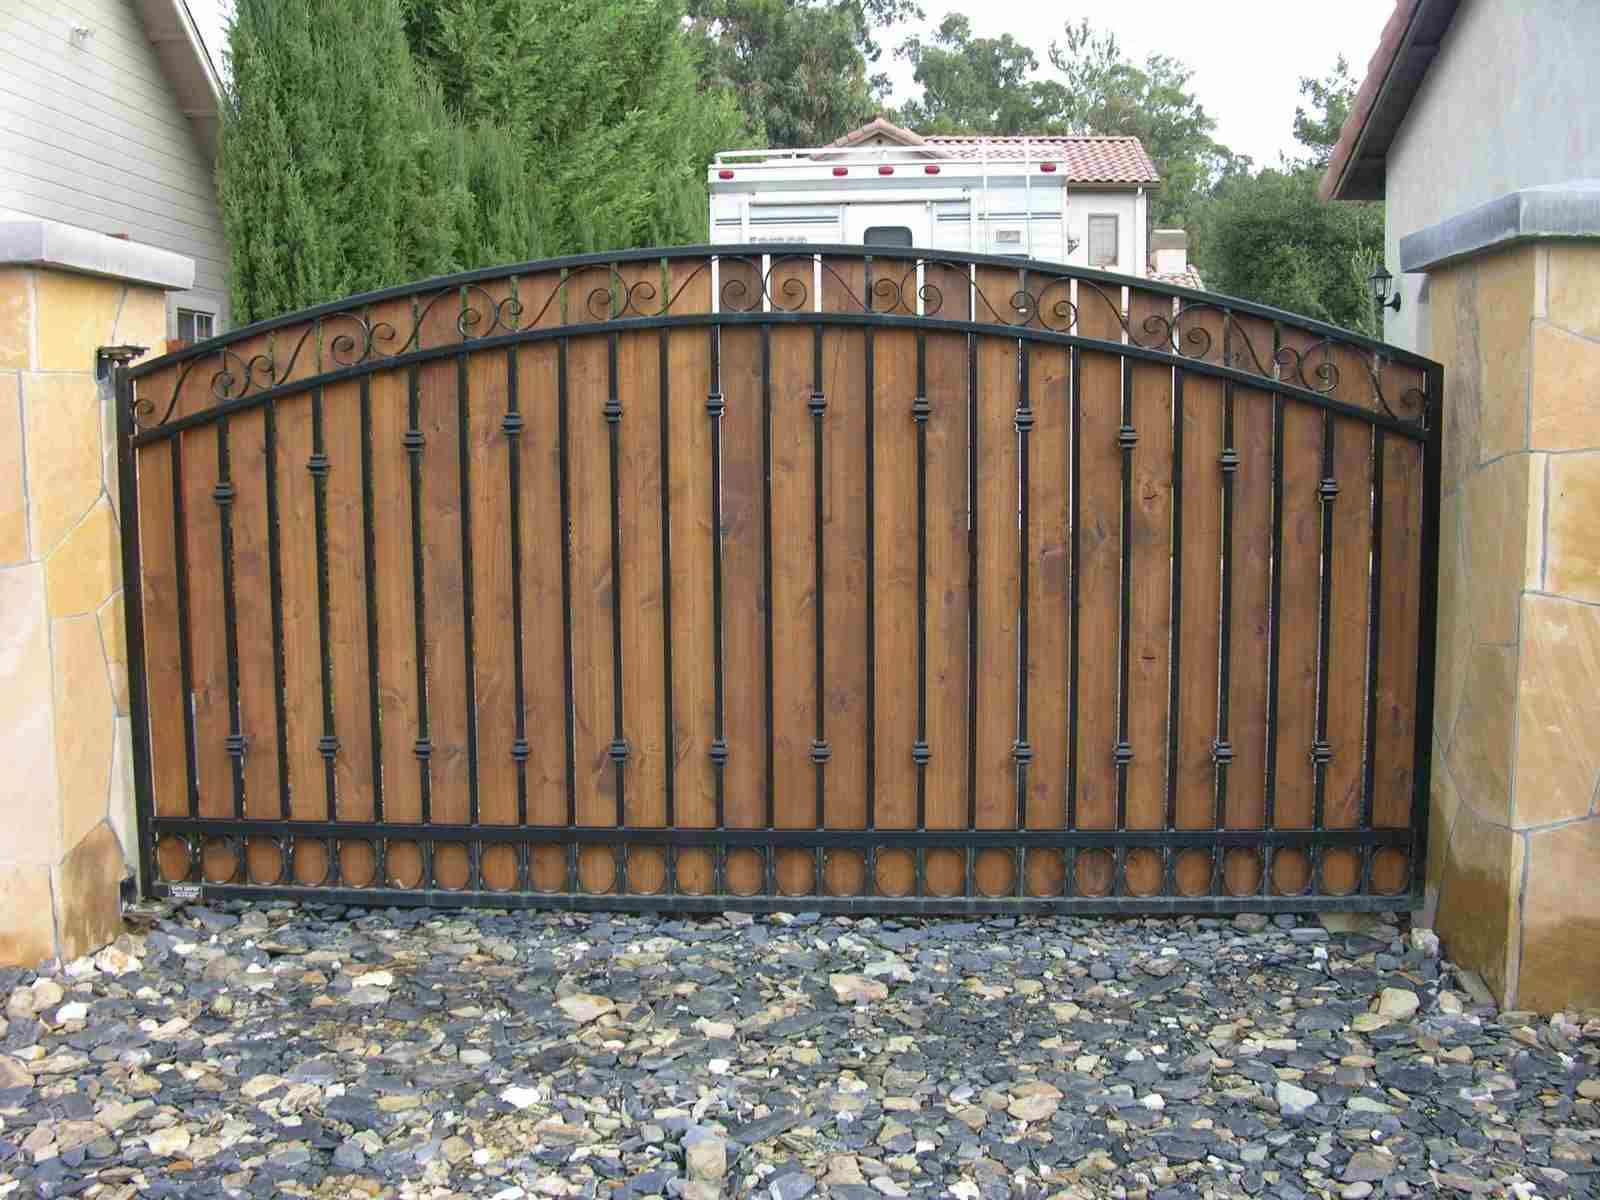 pictures of gates wood gates access control systems driveway gates security gates - Gate Design Ideas